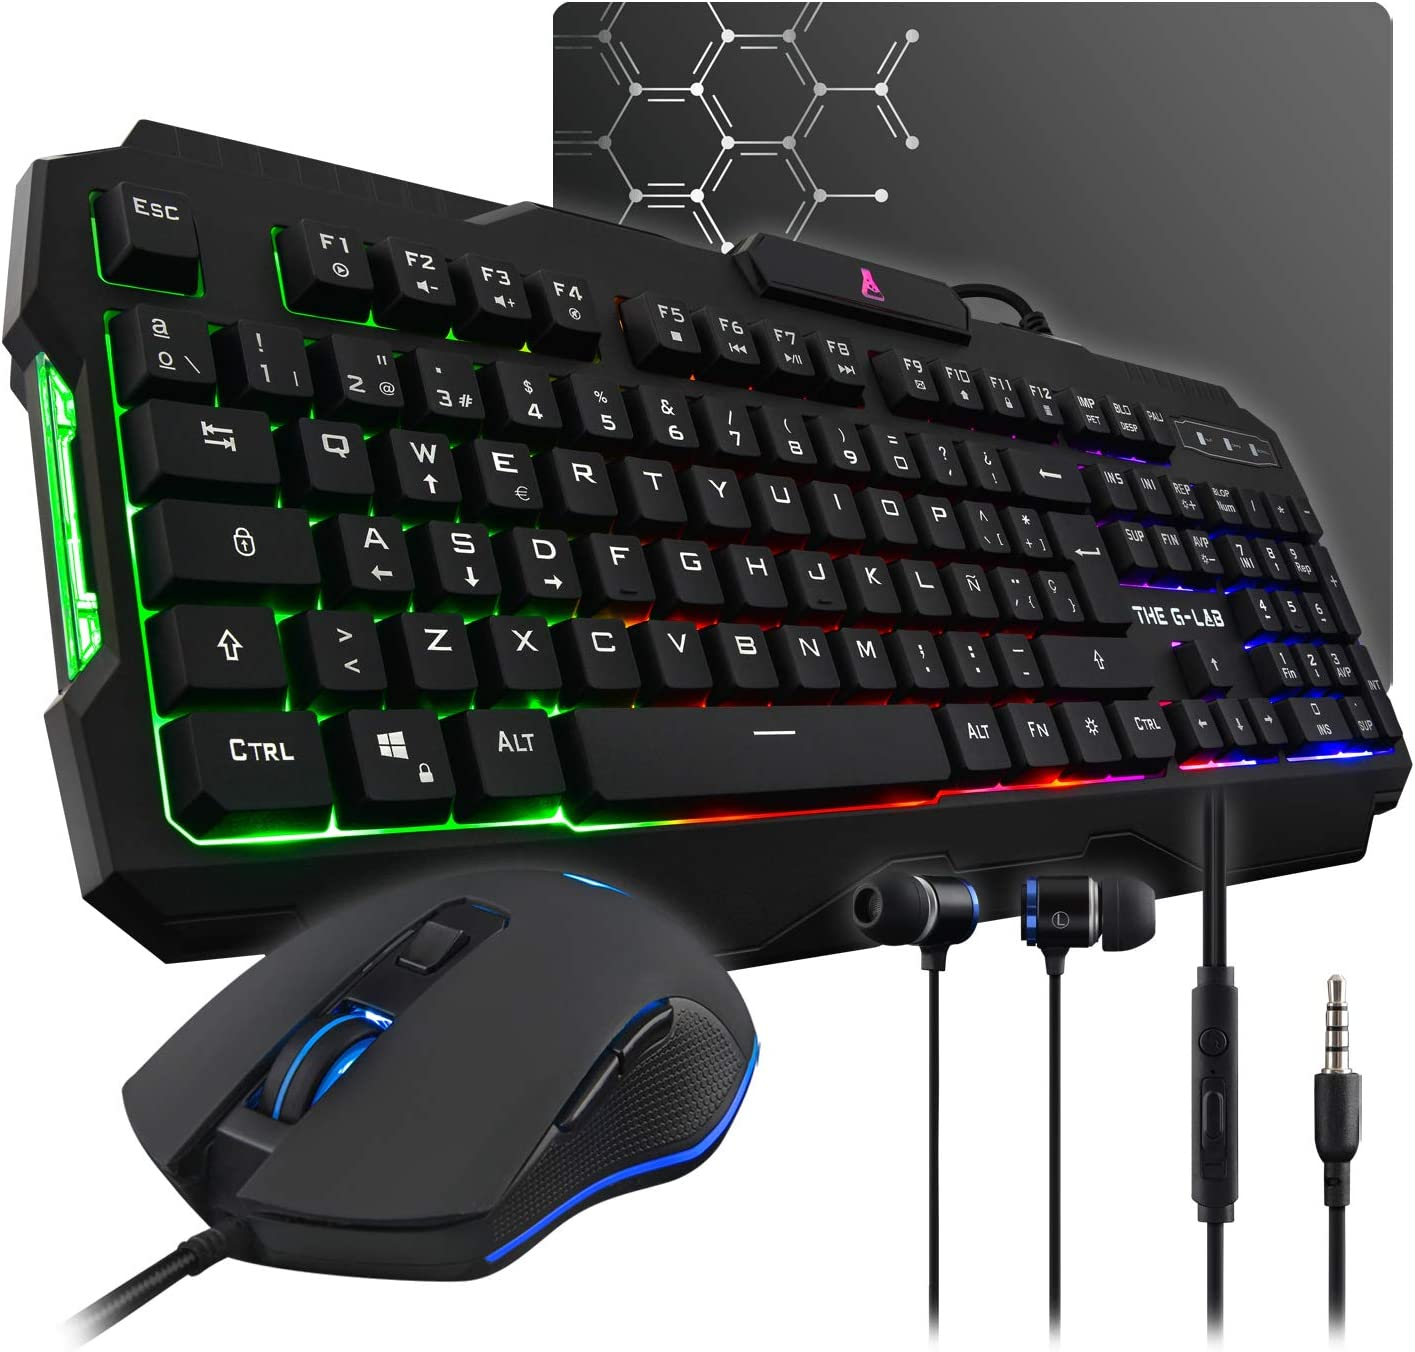 THE G-LAB Combo HELIUM 4 en 1 Gaming Bundle - Teclado Gaming QWERTY – Incluye Ñ - Retroiluminado, Ratón Gaming de 3200 DPI, Auriculares in-ear, Alfombrilla de Ratón Antideslizante – PC PS4 Xbox One